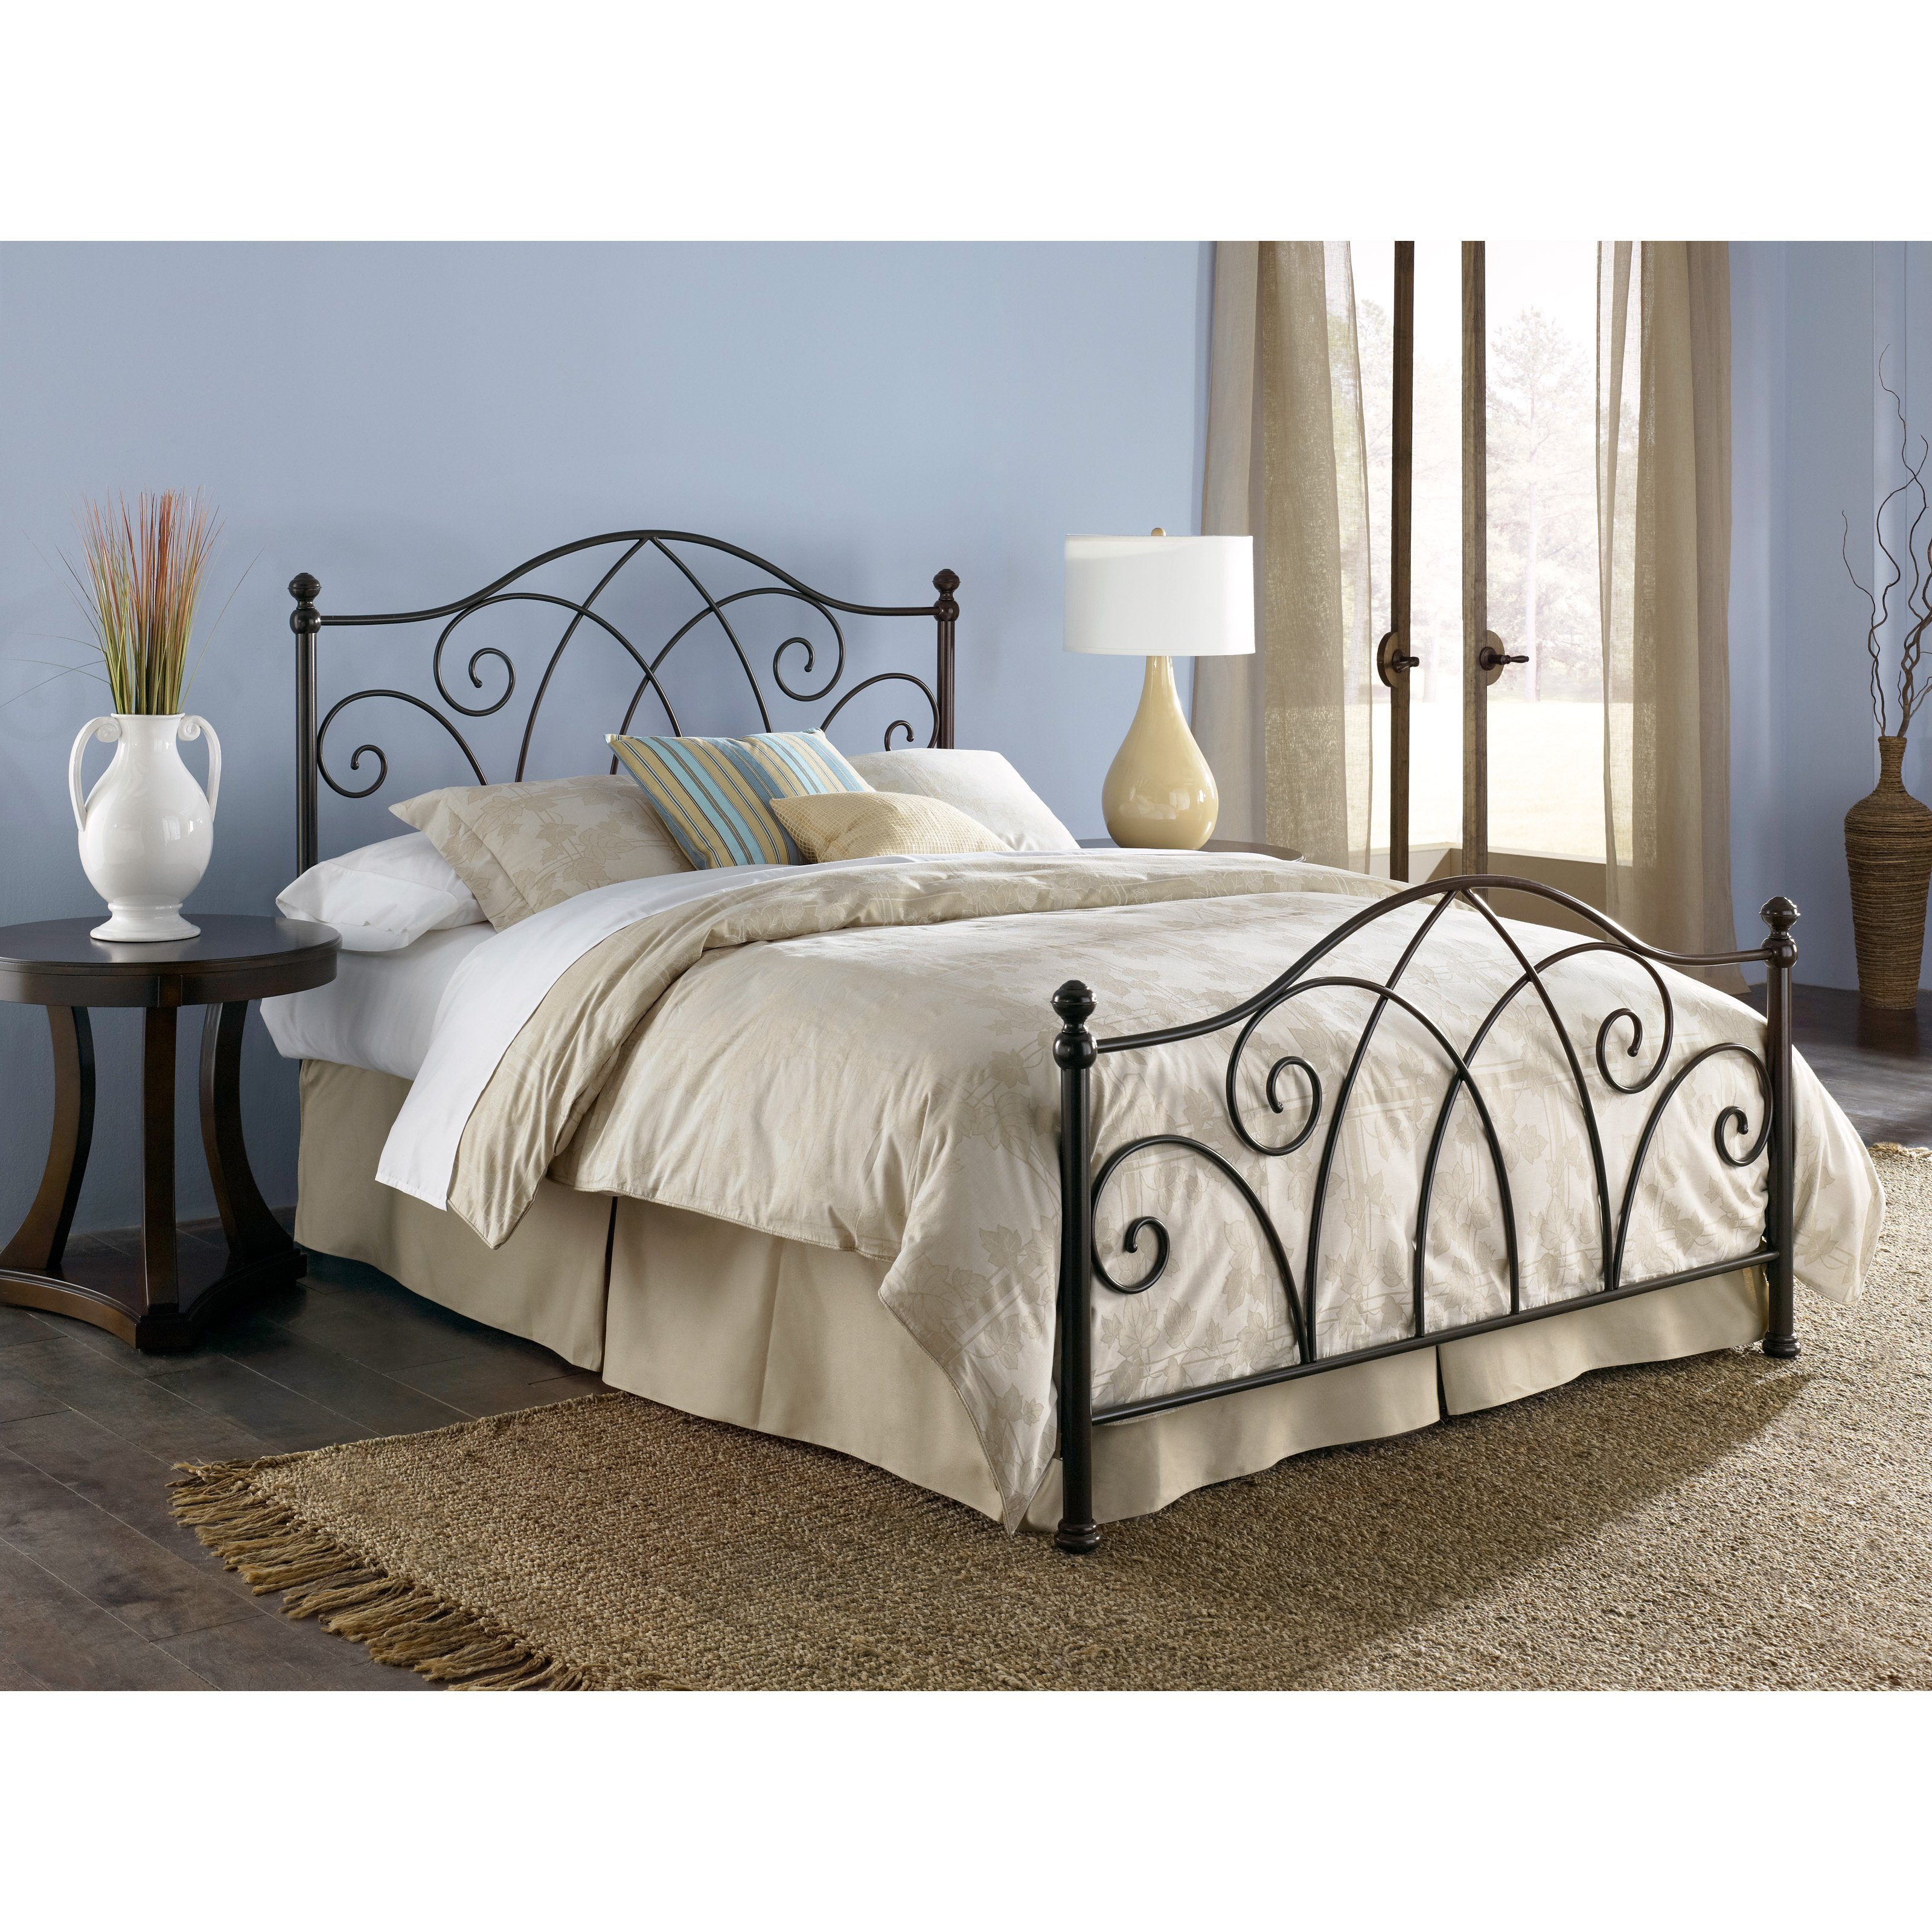 Fashion Bed Group Deland Bed